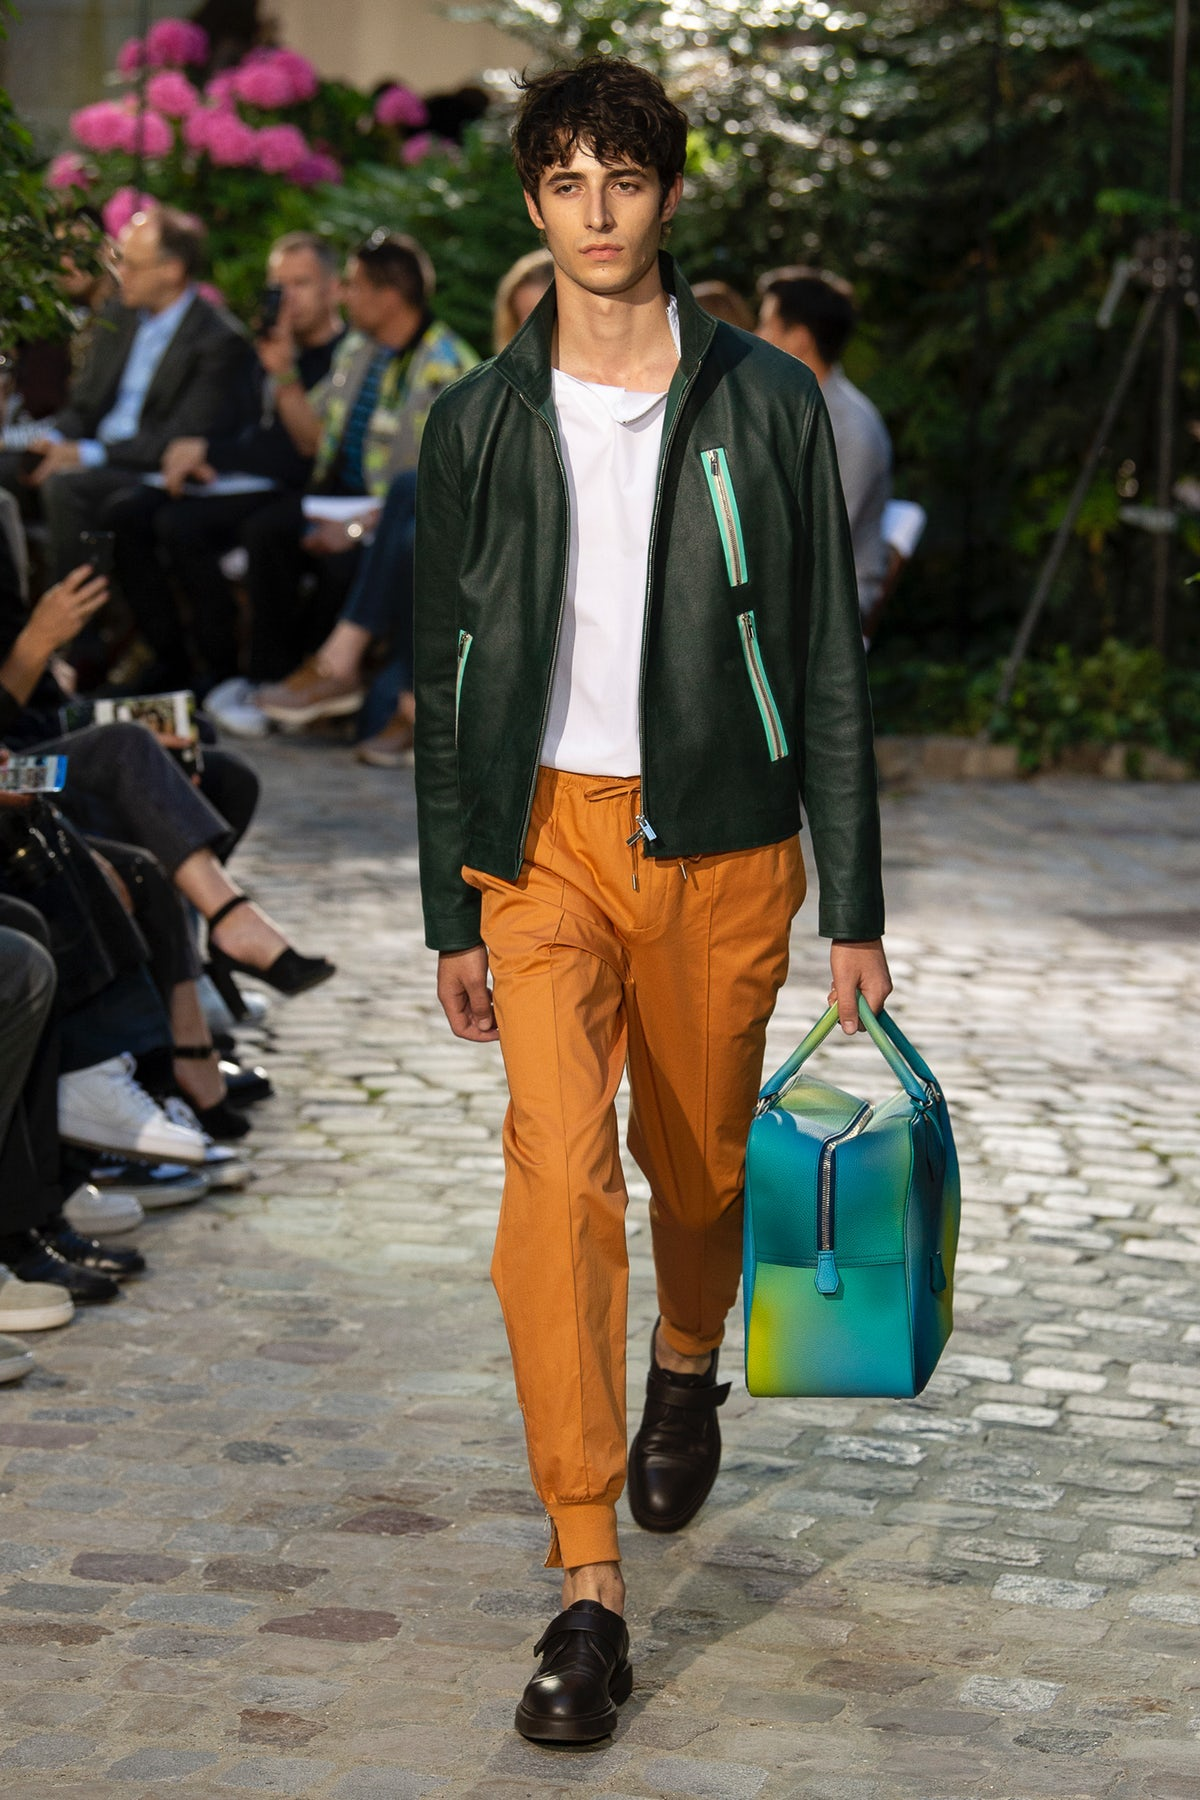 Hermès Spring/Summer 2019 | Source: Indigital.tv